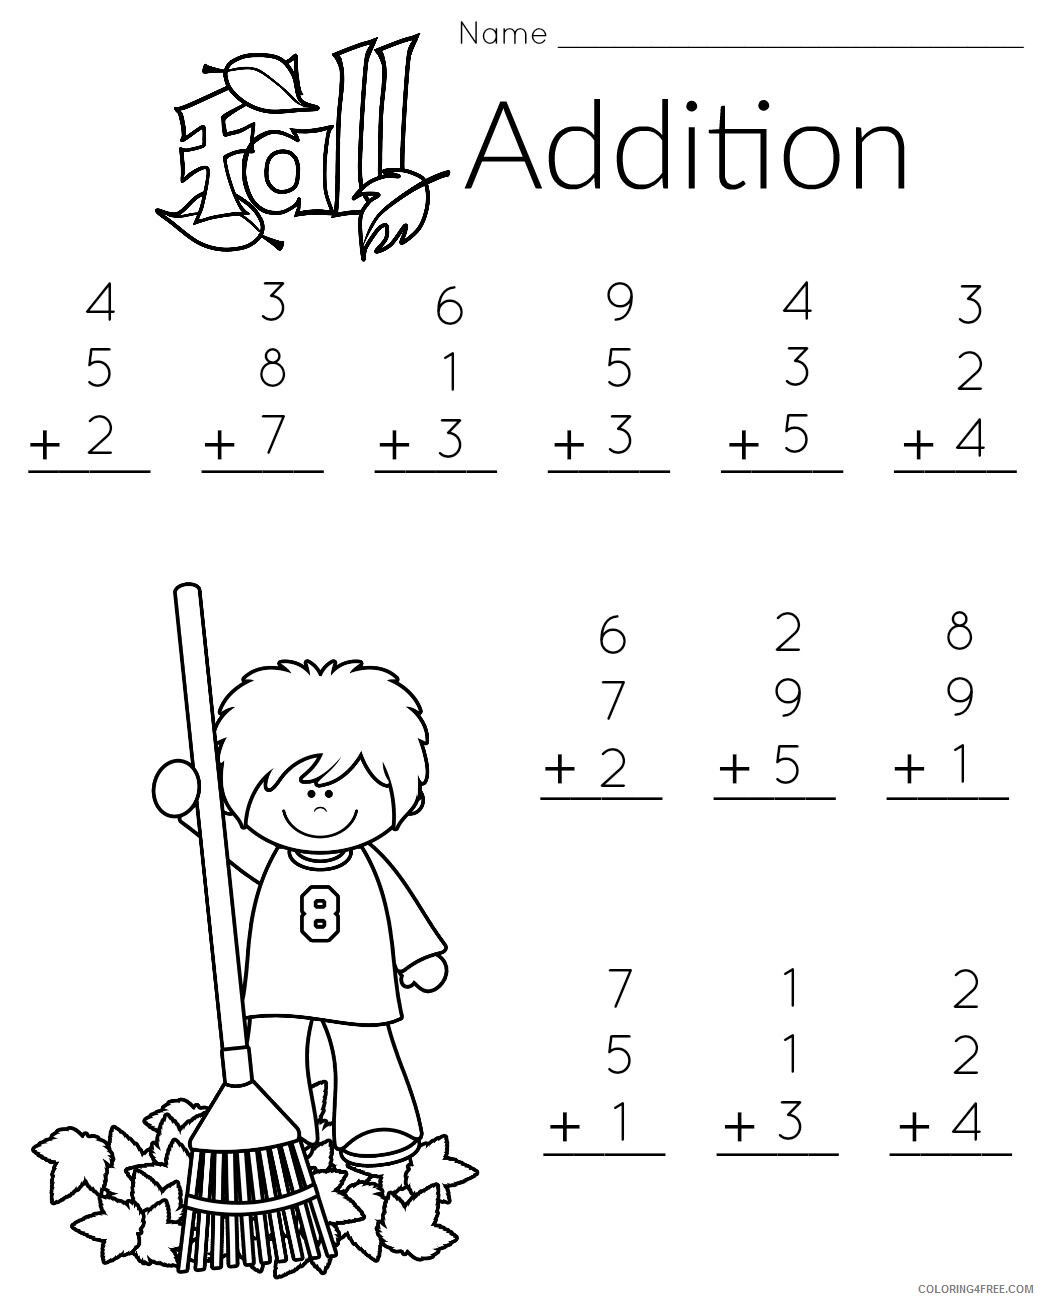 1st Grade Coloring Pages Educational Math Worksheets Printable 2020 0085 Coloring4free Coloring4free Com